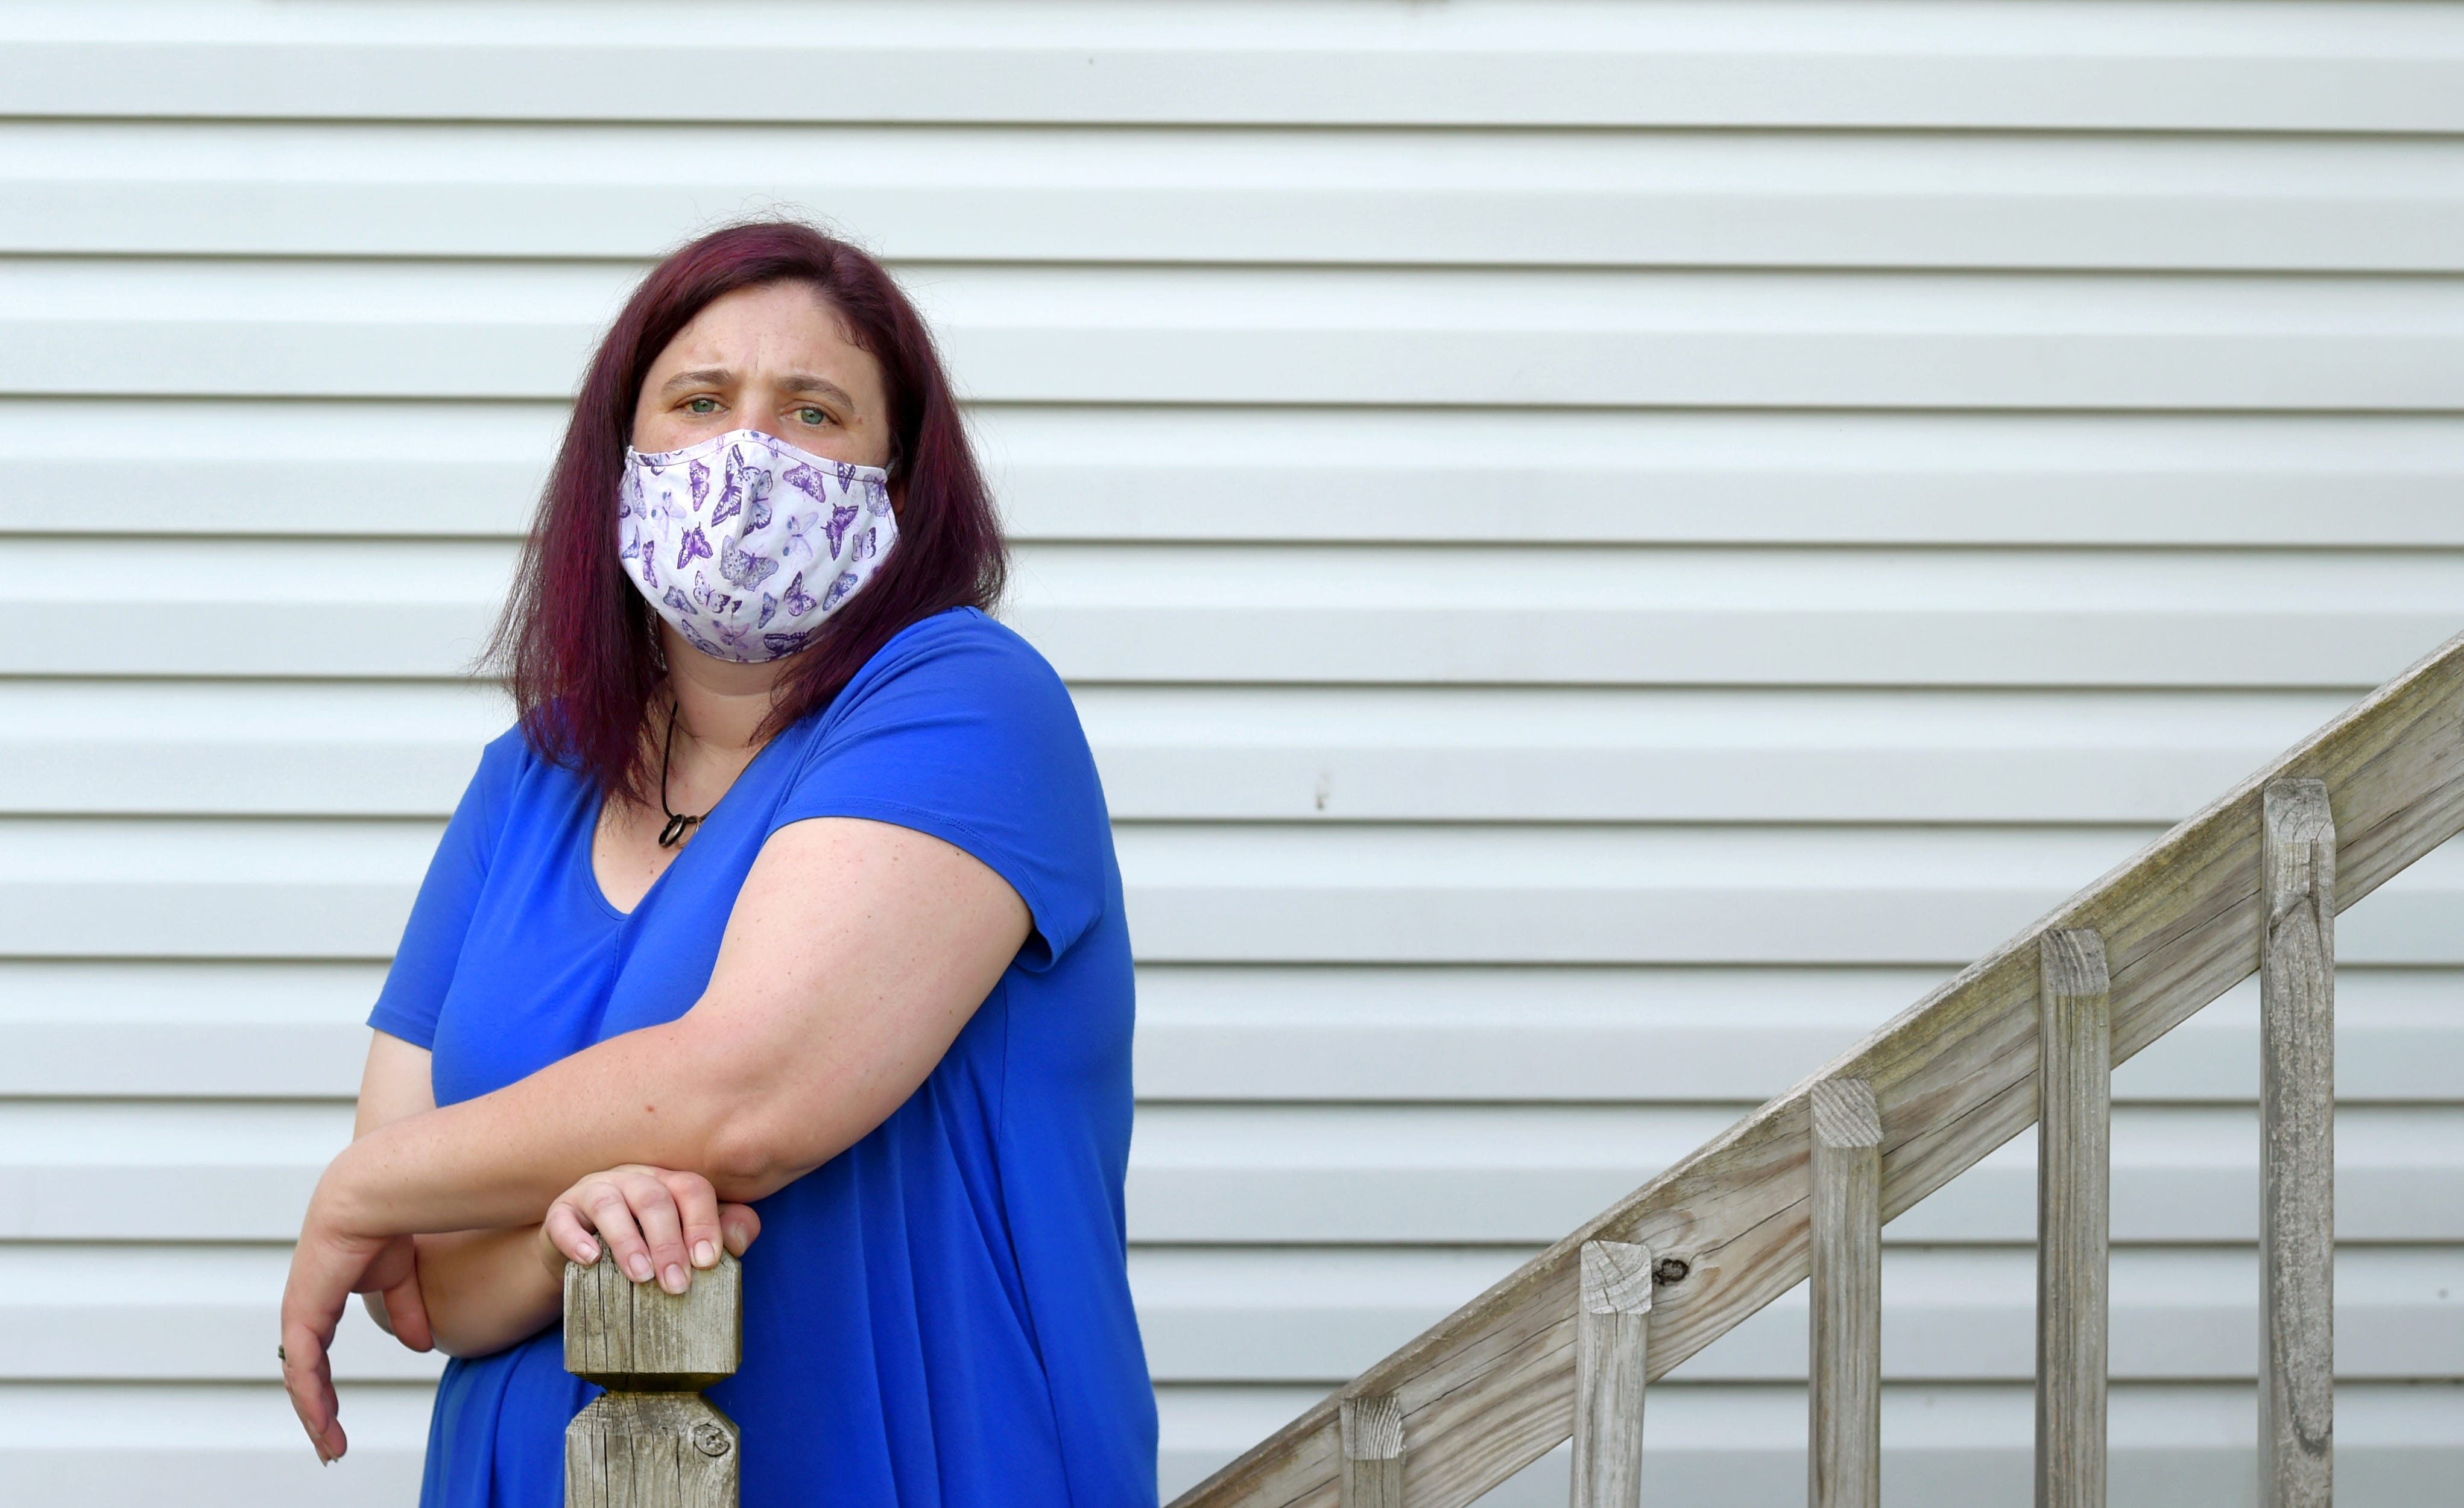 Heather Picker, 38, Johnson City works at a construction company and is the primary earner for her wife and their two children. Due to Covid-19, Picker's hours and pay were significantly reduced:  20 hours working followed by a 20-hour furlough, with a net pay of $100. While Picker qualified for unemployment, she encountered difficulties in applying. ÒIÕm never going to see this money. ThatÕs the mental preparation IÕm giving myself,Ó she said. ÒIf I do see it, it will be a pleasant surprise.Ó